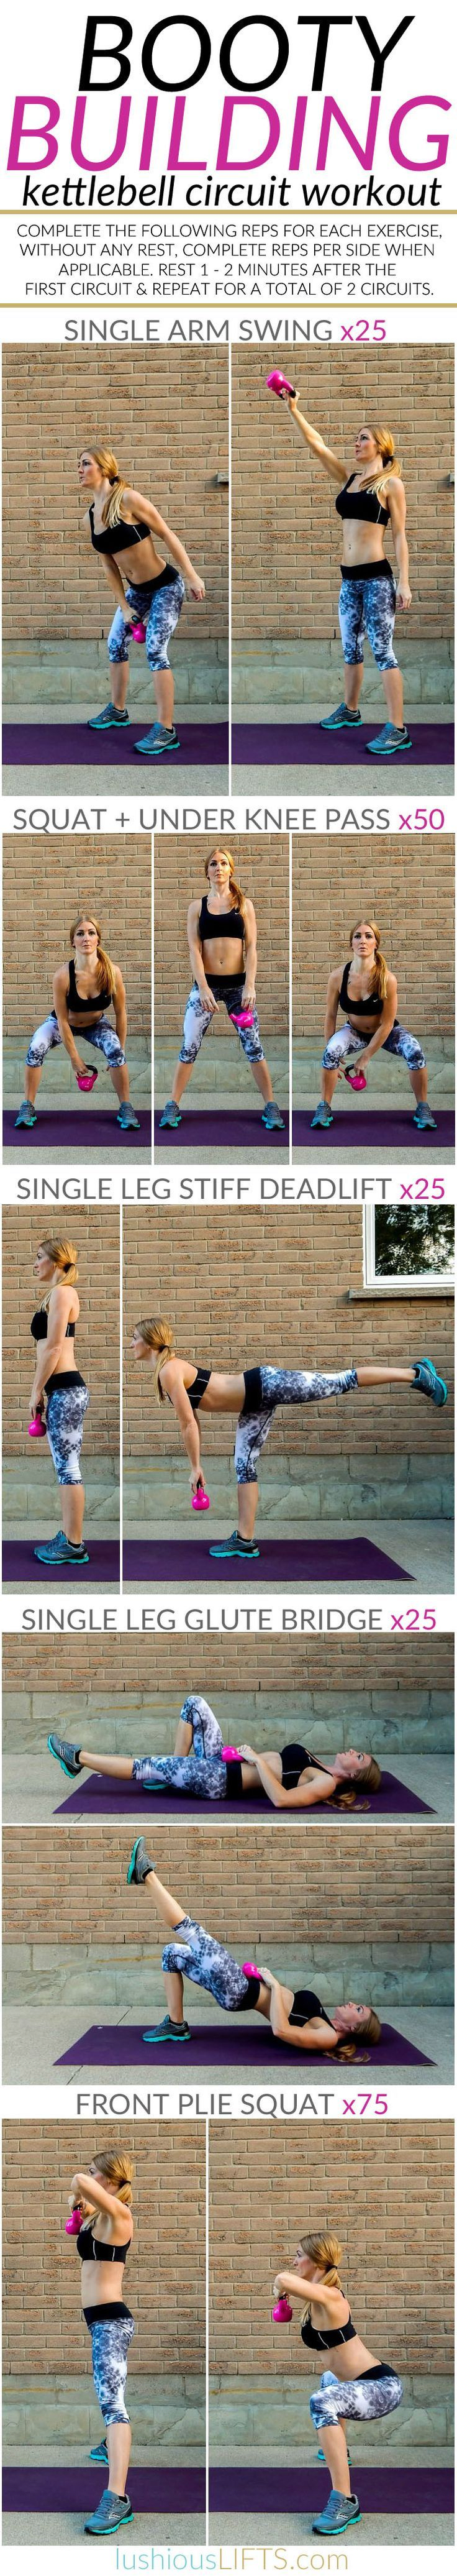 Booty Building Kettlebell Circuit #Workout    http://lushiousLIFTS.com